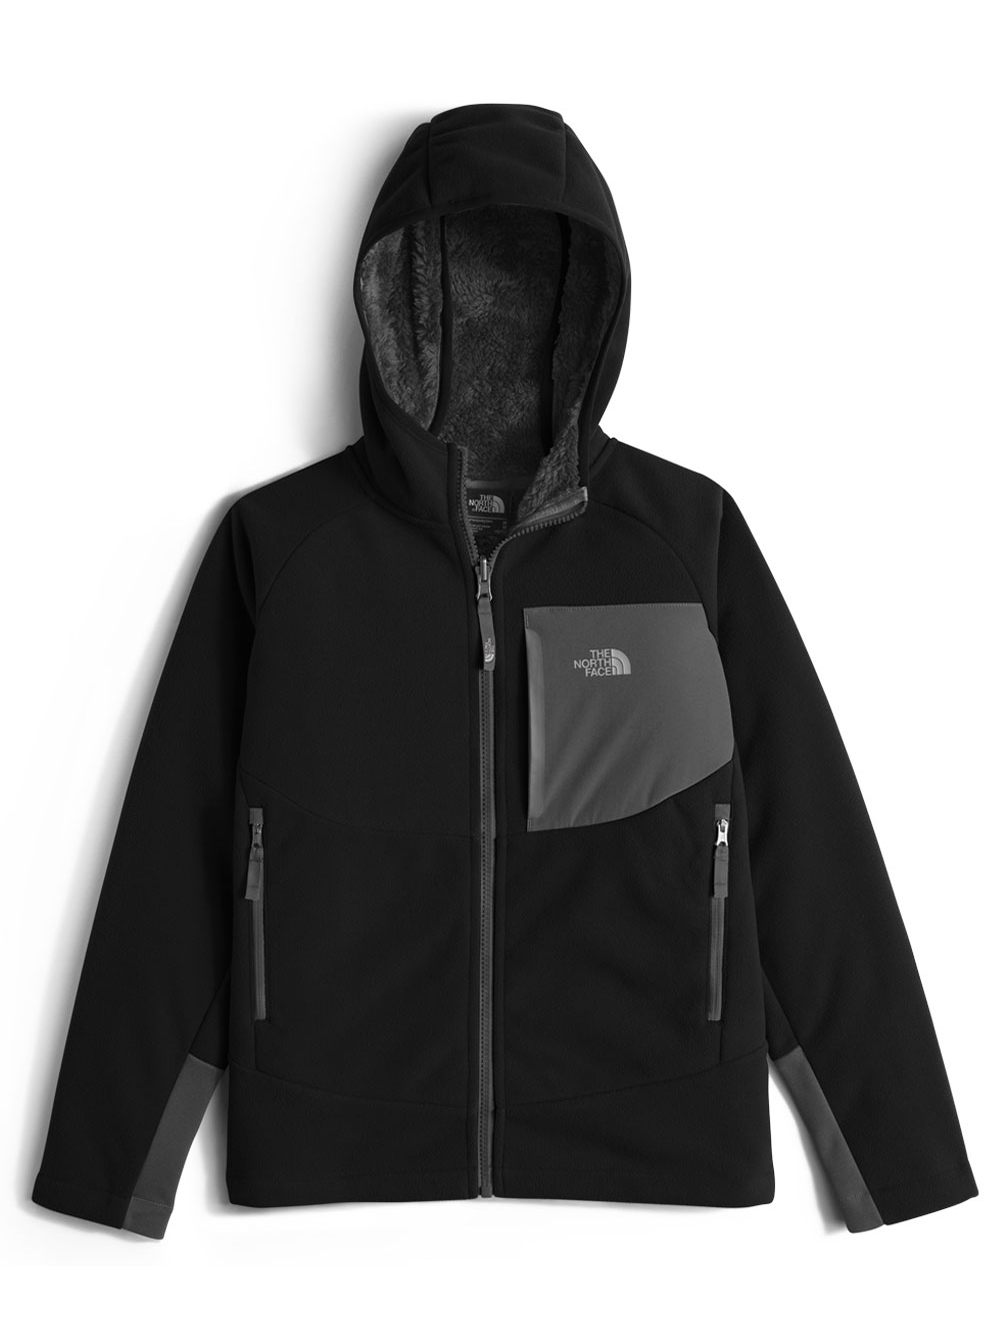 78a2a1fa5 Boys' Chimborazo Hoodie by The North Face in black, bright cobalt blue and  graphite gray/canary yellow